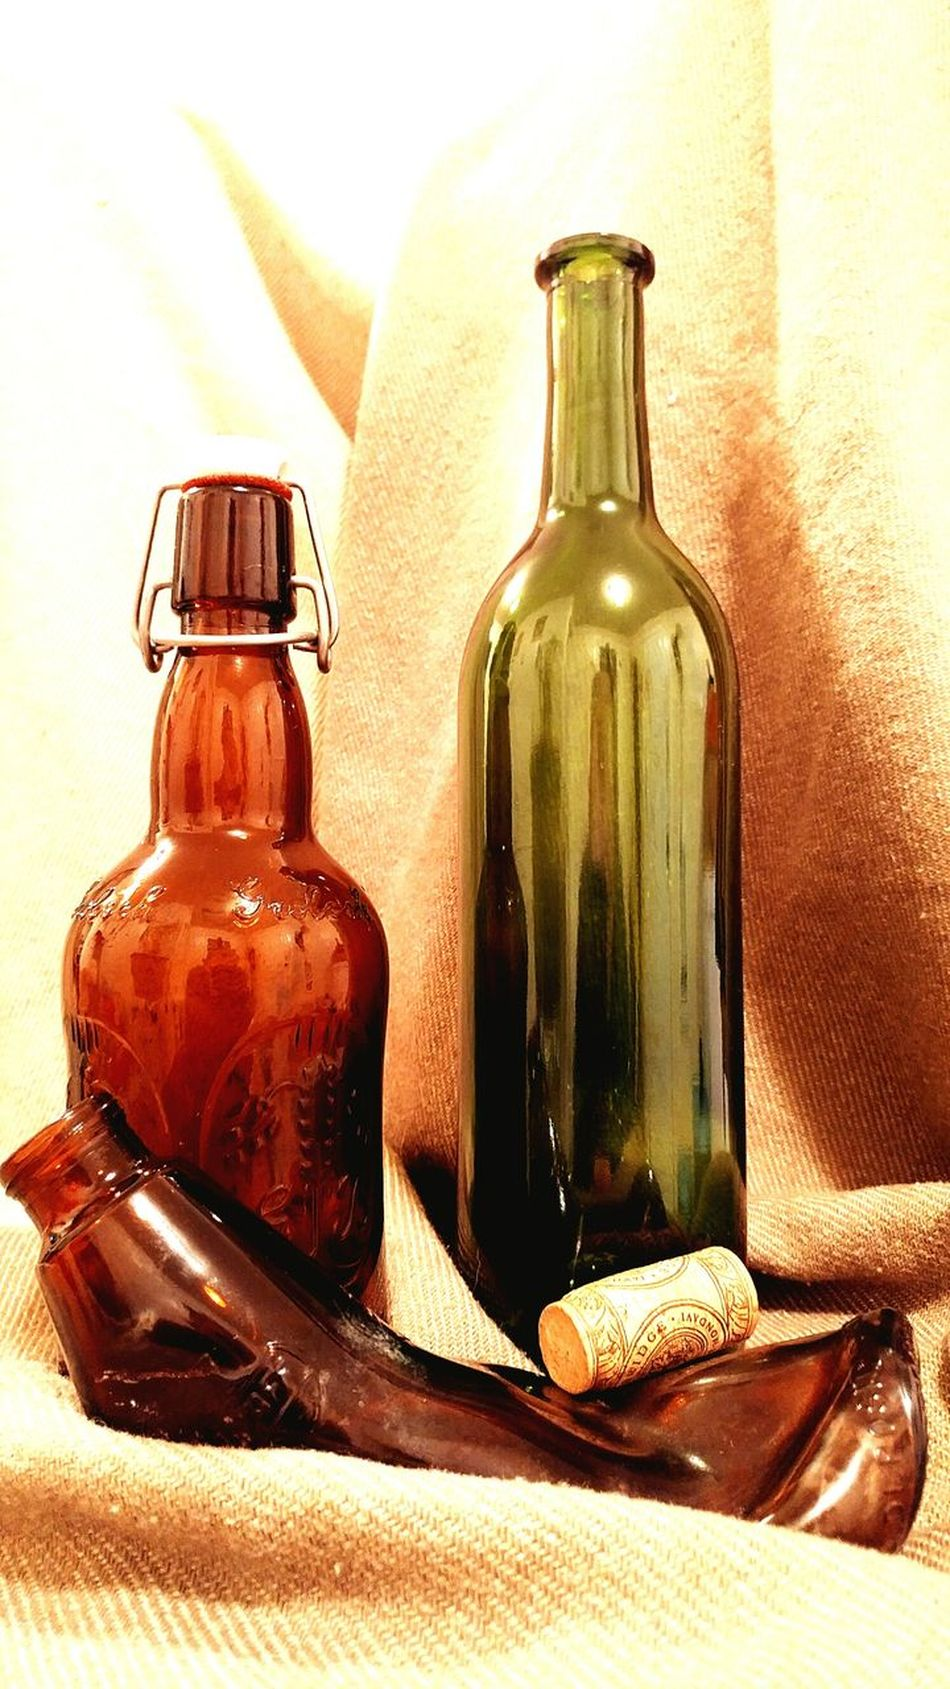 Lieblingsteil Glass Art Bottle Food And Drink Old-fashioned Close-up No People Food Nuclear Blast Desert Glass Sculptures Old Bottles Cork Wine Beer Vintage Lieblingsteil EyeEm Best Shots